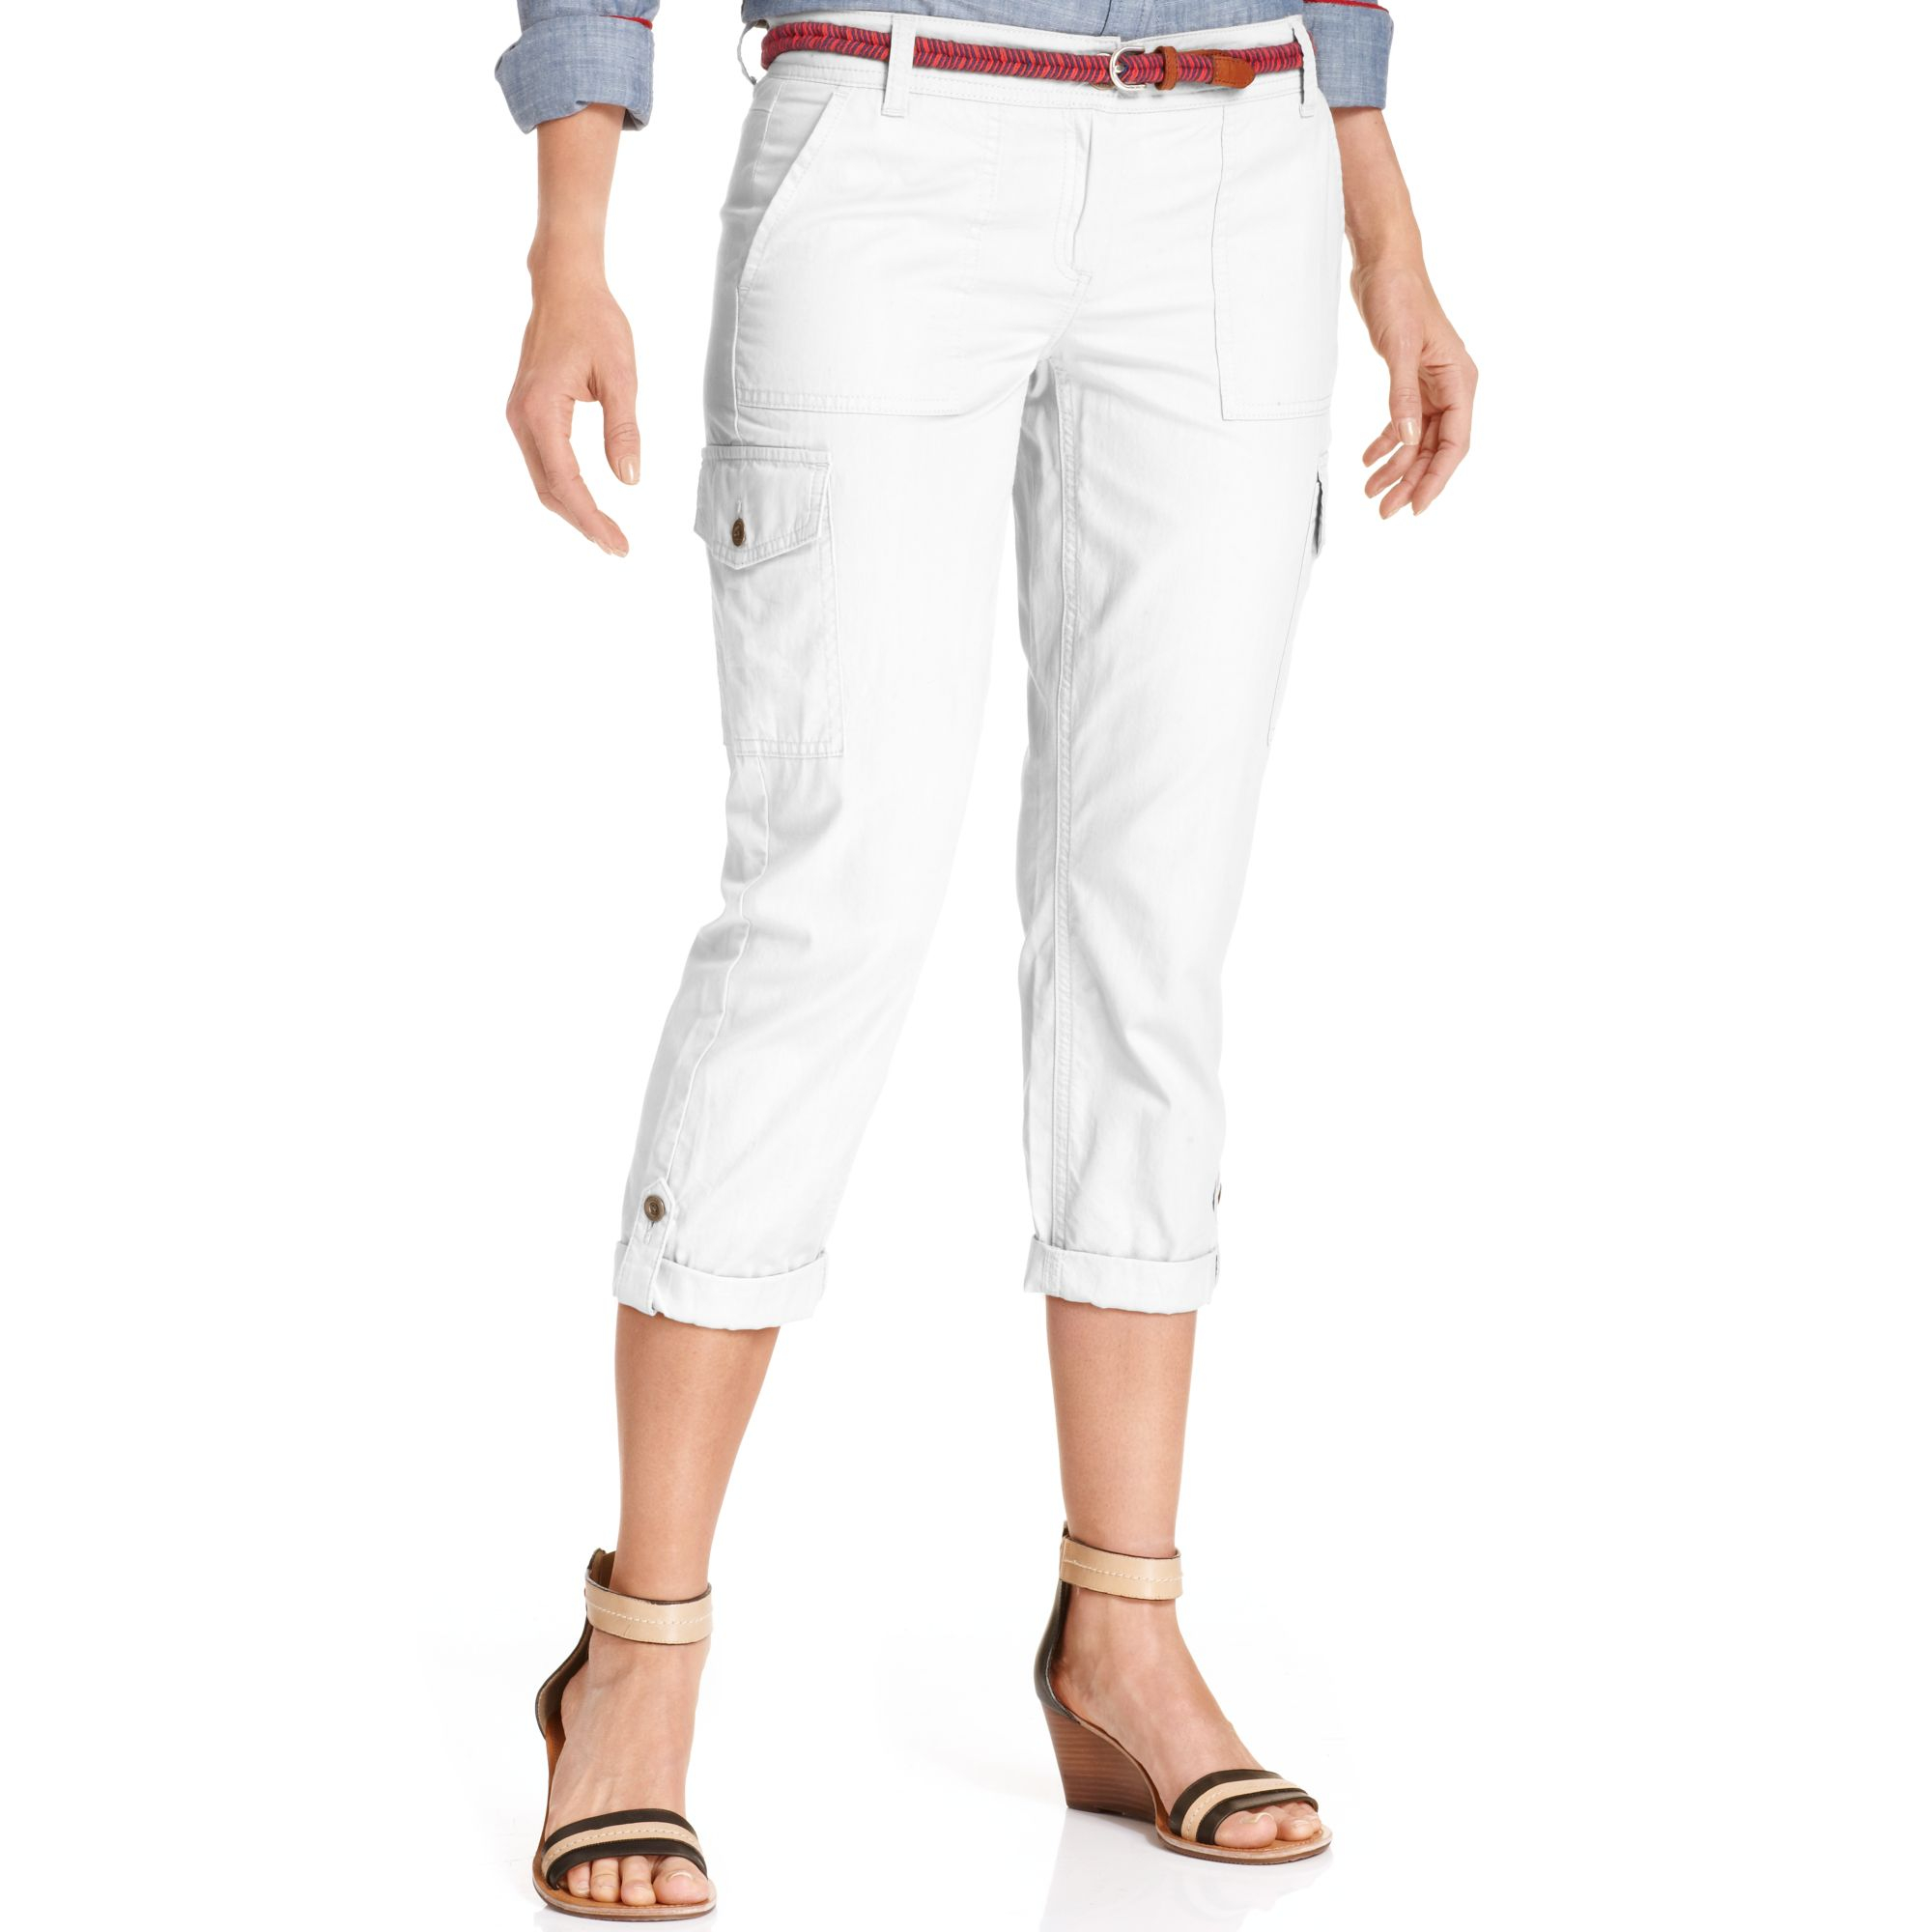 6fc3d8dd34 Tommy Hilfiger Cropped Cargo Pants in White - Lyst